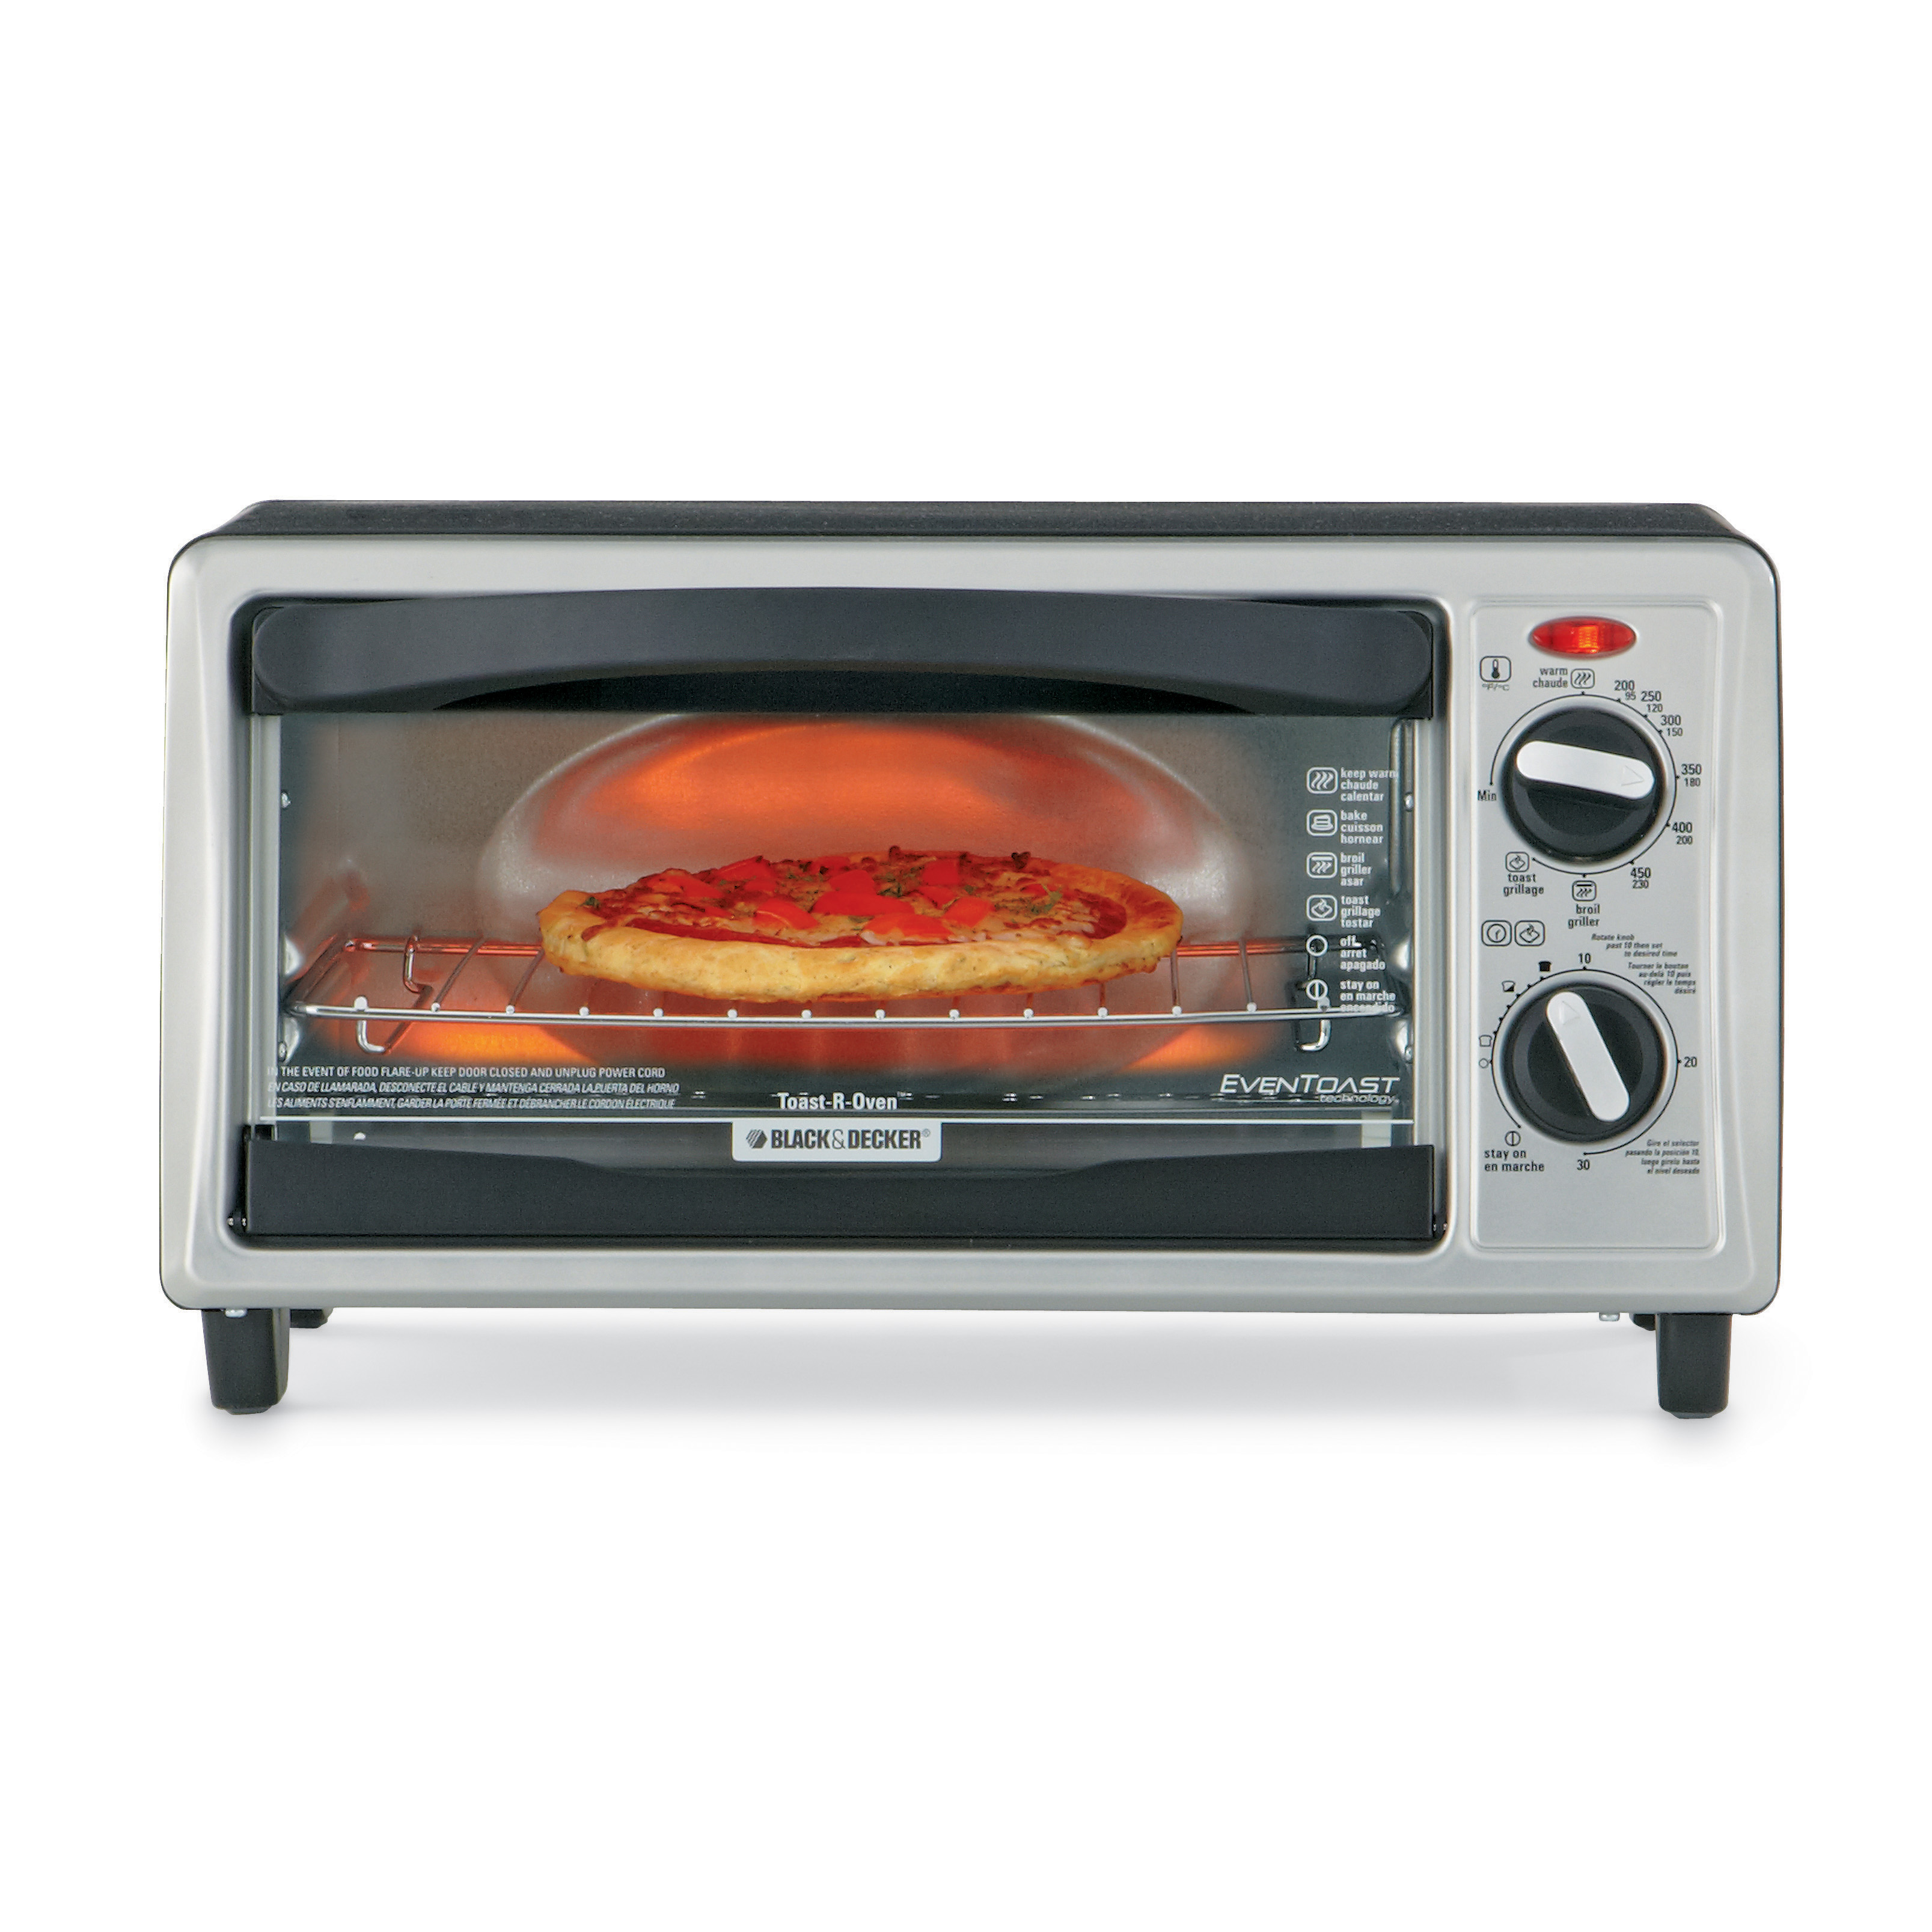 Black & Decker 4-Slice Toaster Oven Silver